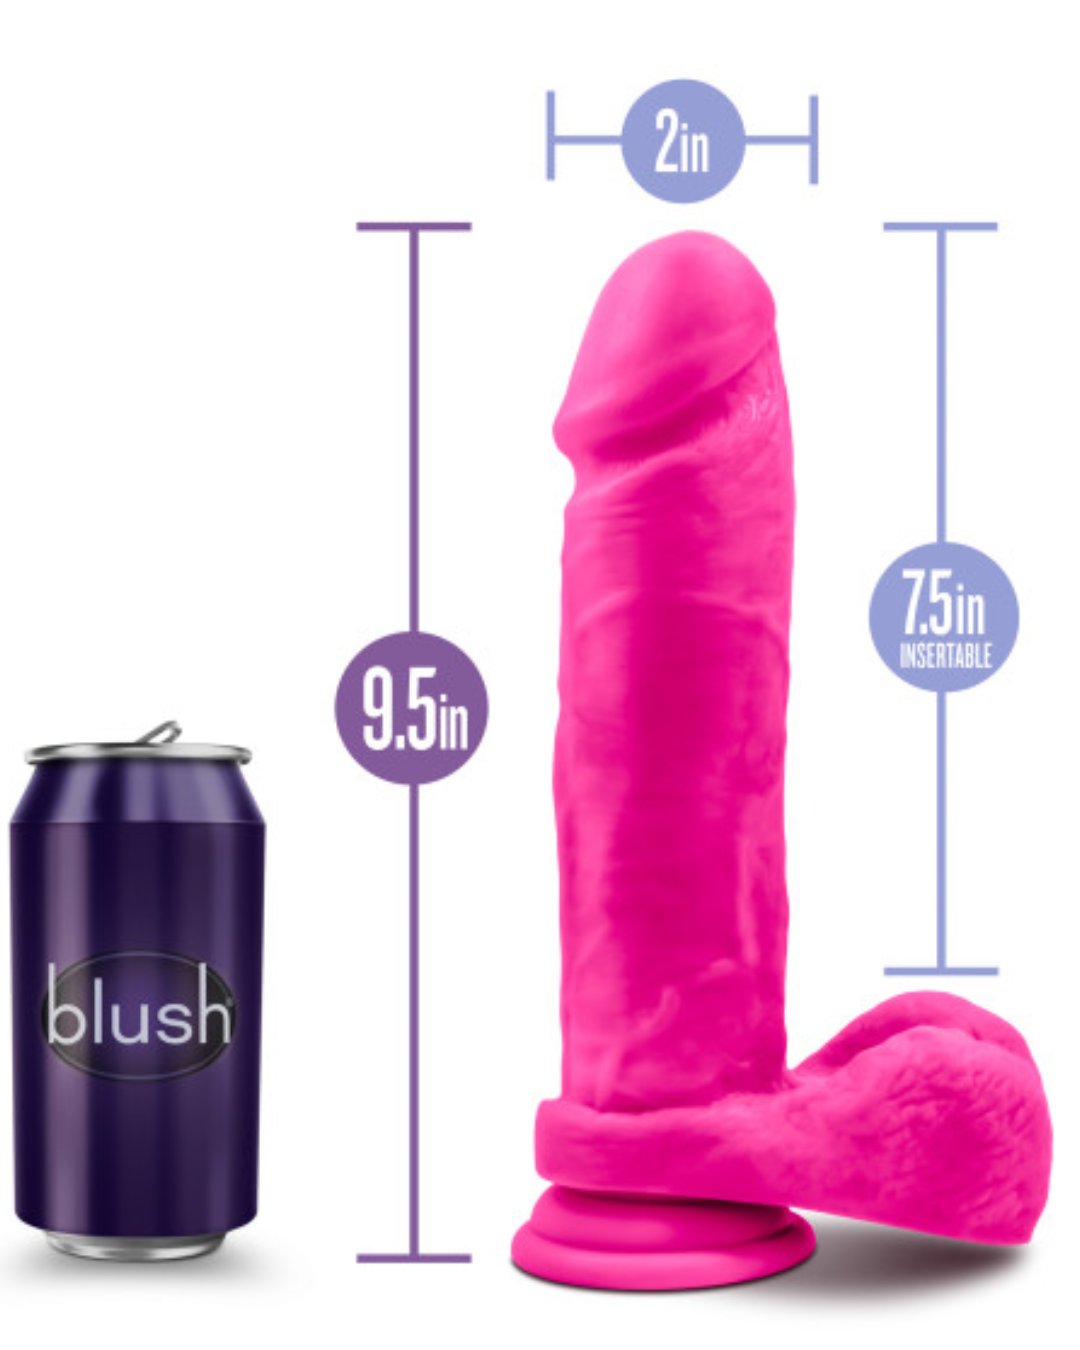 Au Naturel Bold Massive 9 Inch Sensa Feel Suction Cup Dildo by Blush - Pink with soda can for scale